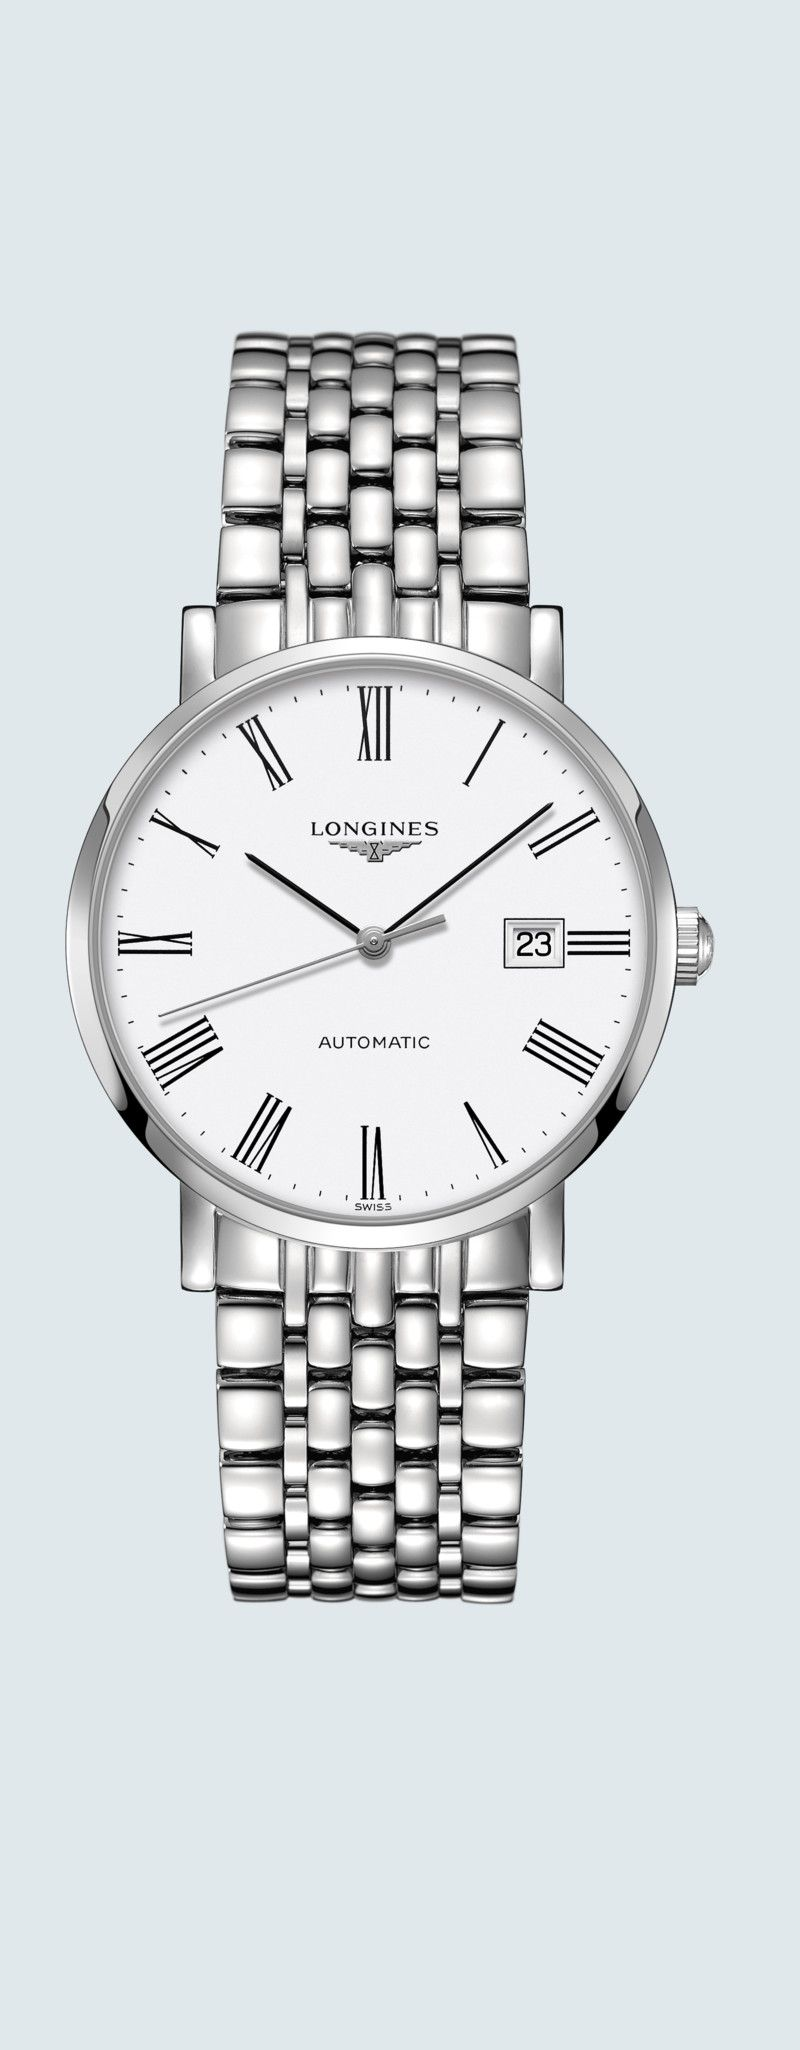 39.00 mm Stainless steel case with White matt dial and Stainless steel strap - case zoom view